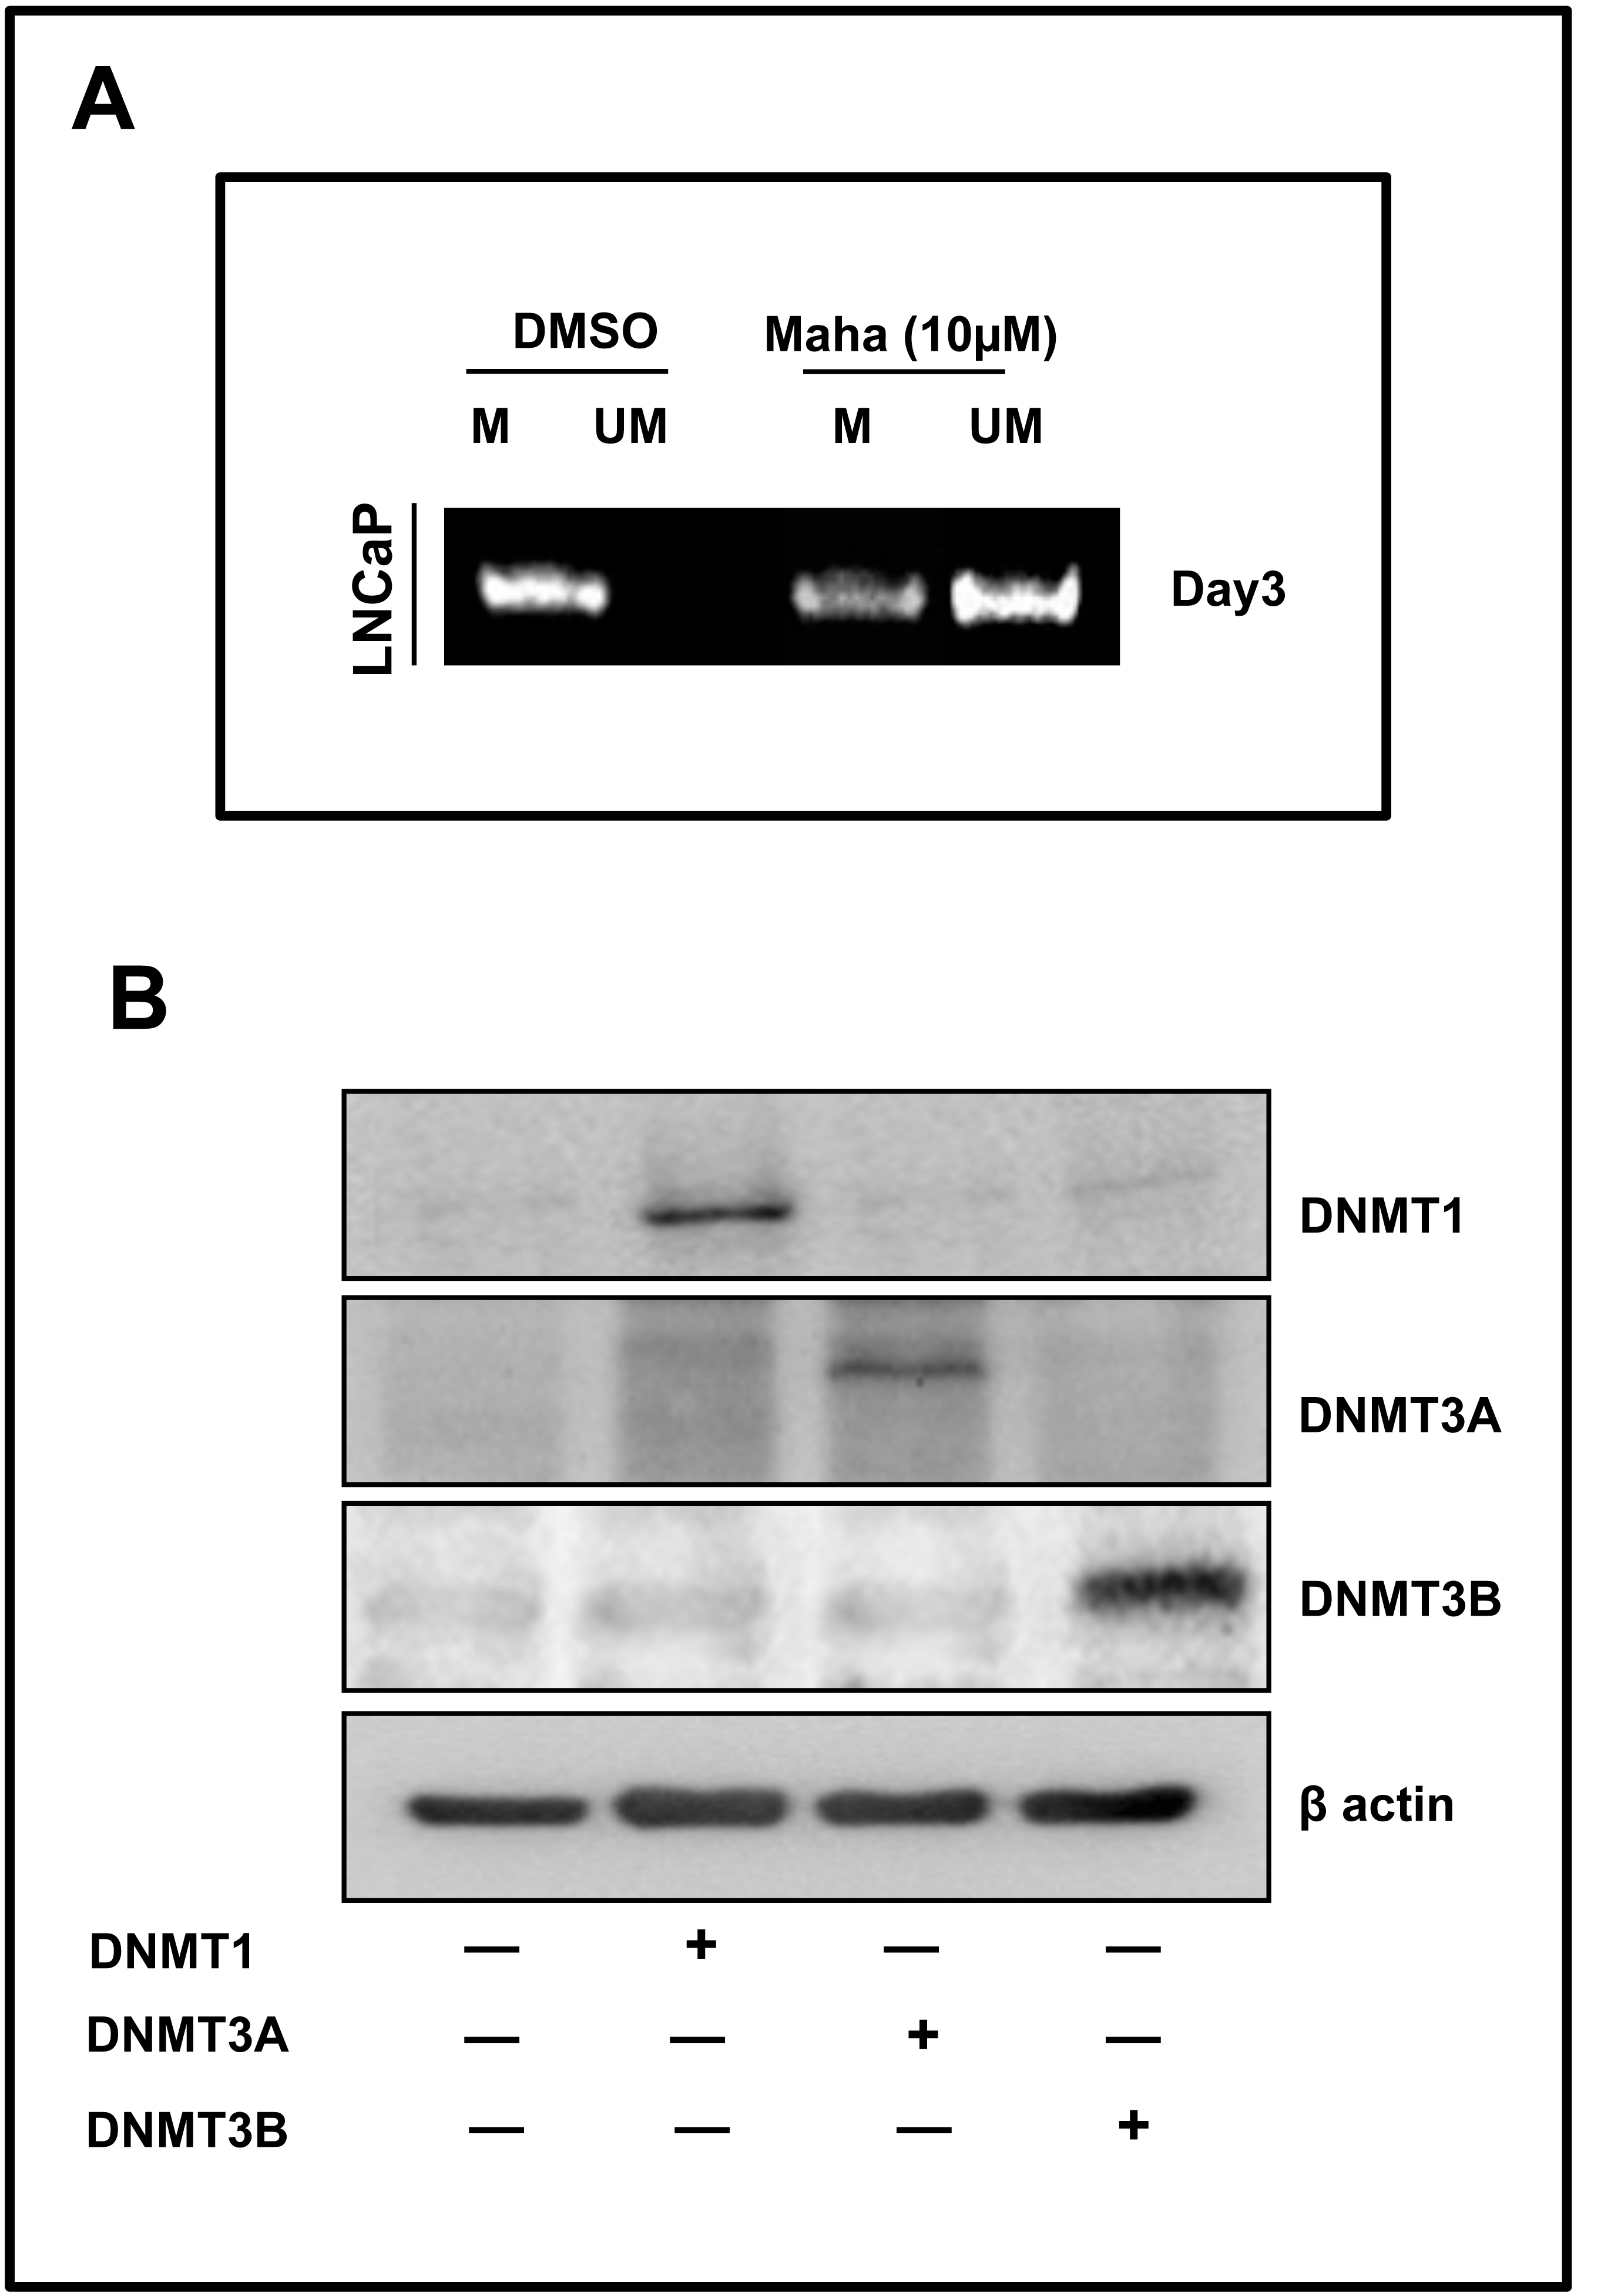 mahanine restores rassf1a expression by down regulating